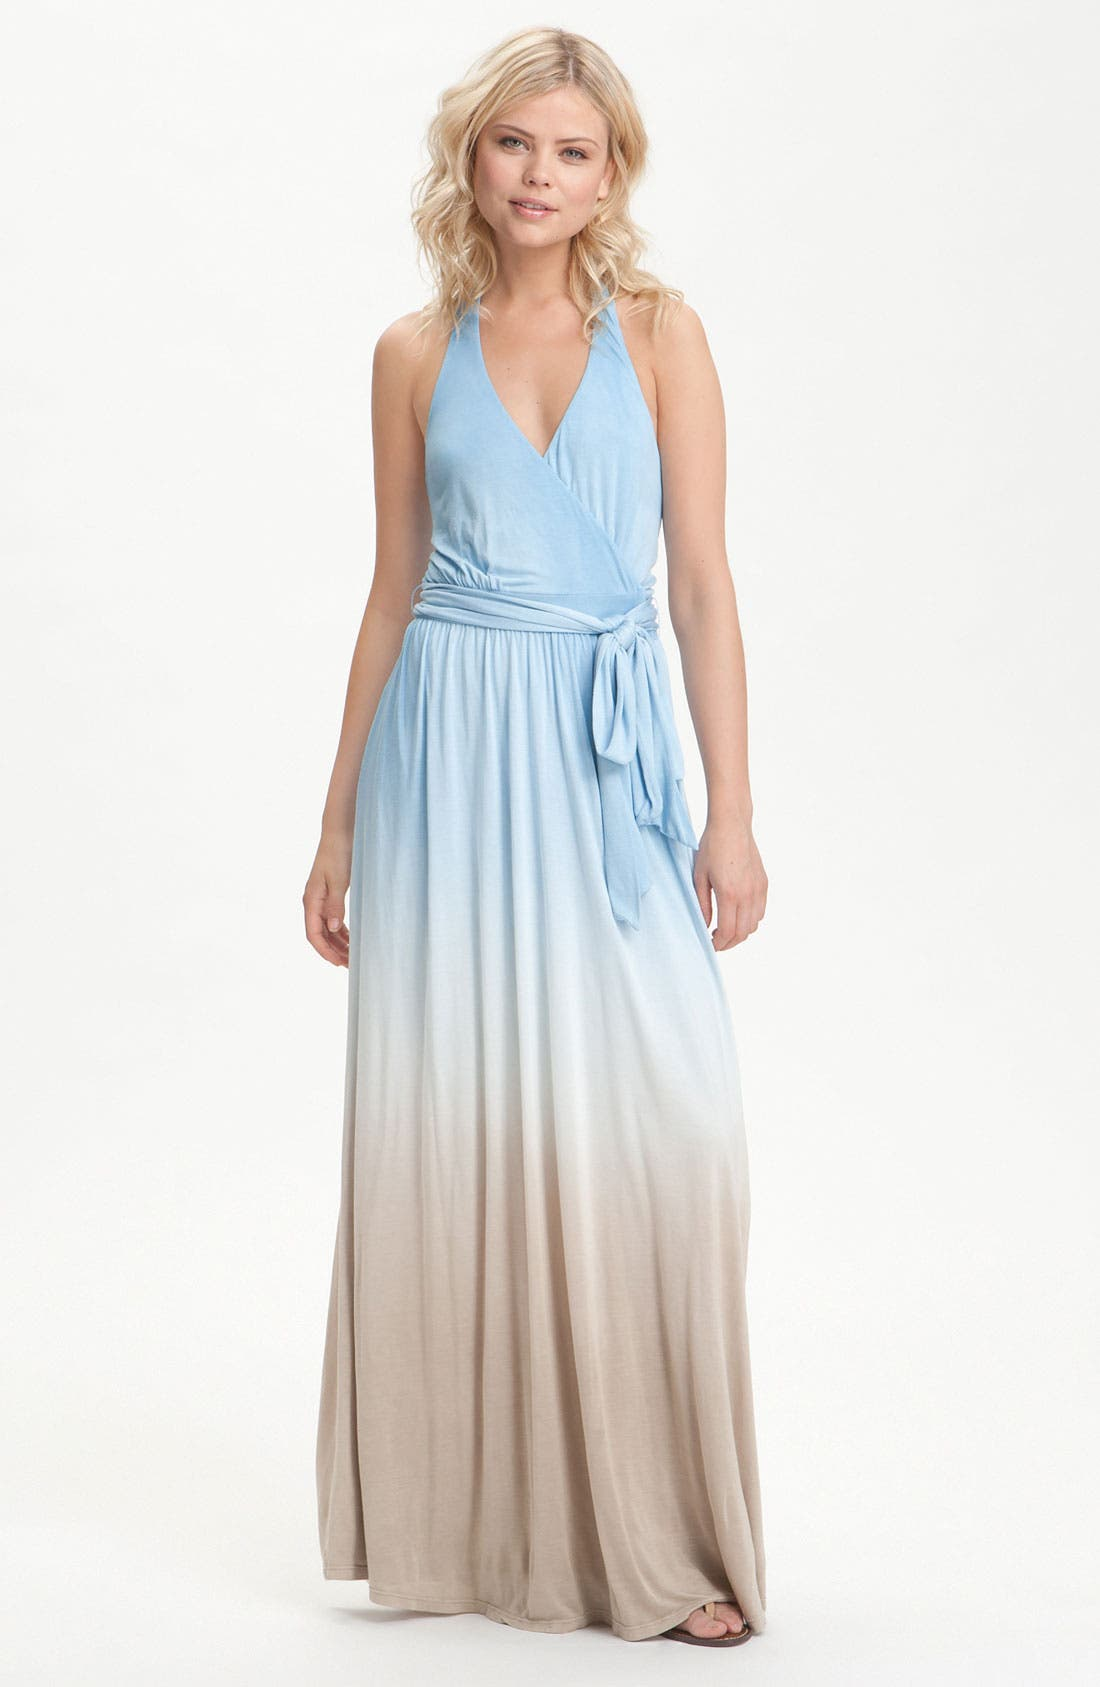 Main Image - Young, Fabulous & Broke 'Jeremiah' Ombré Halter Maxi Dress